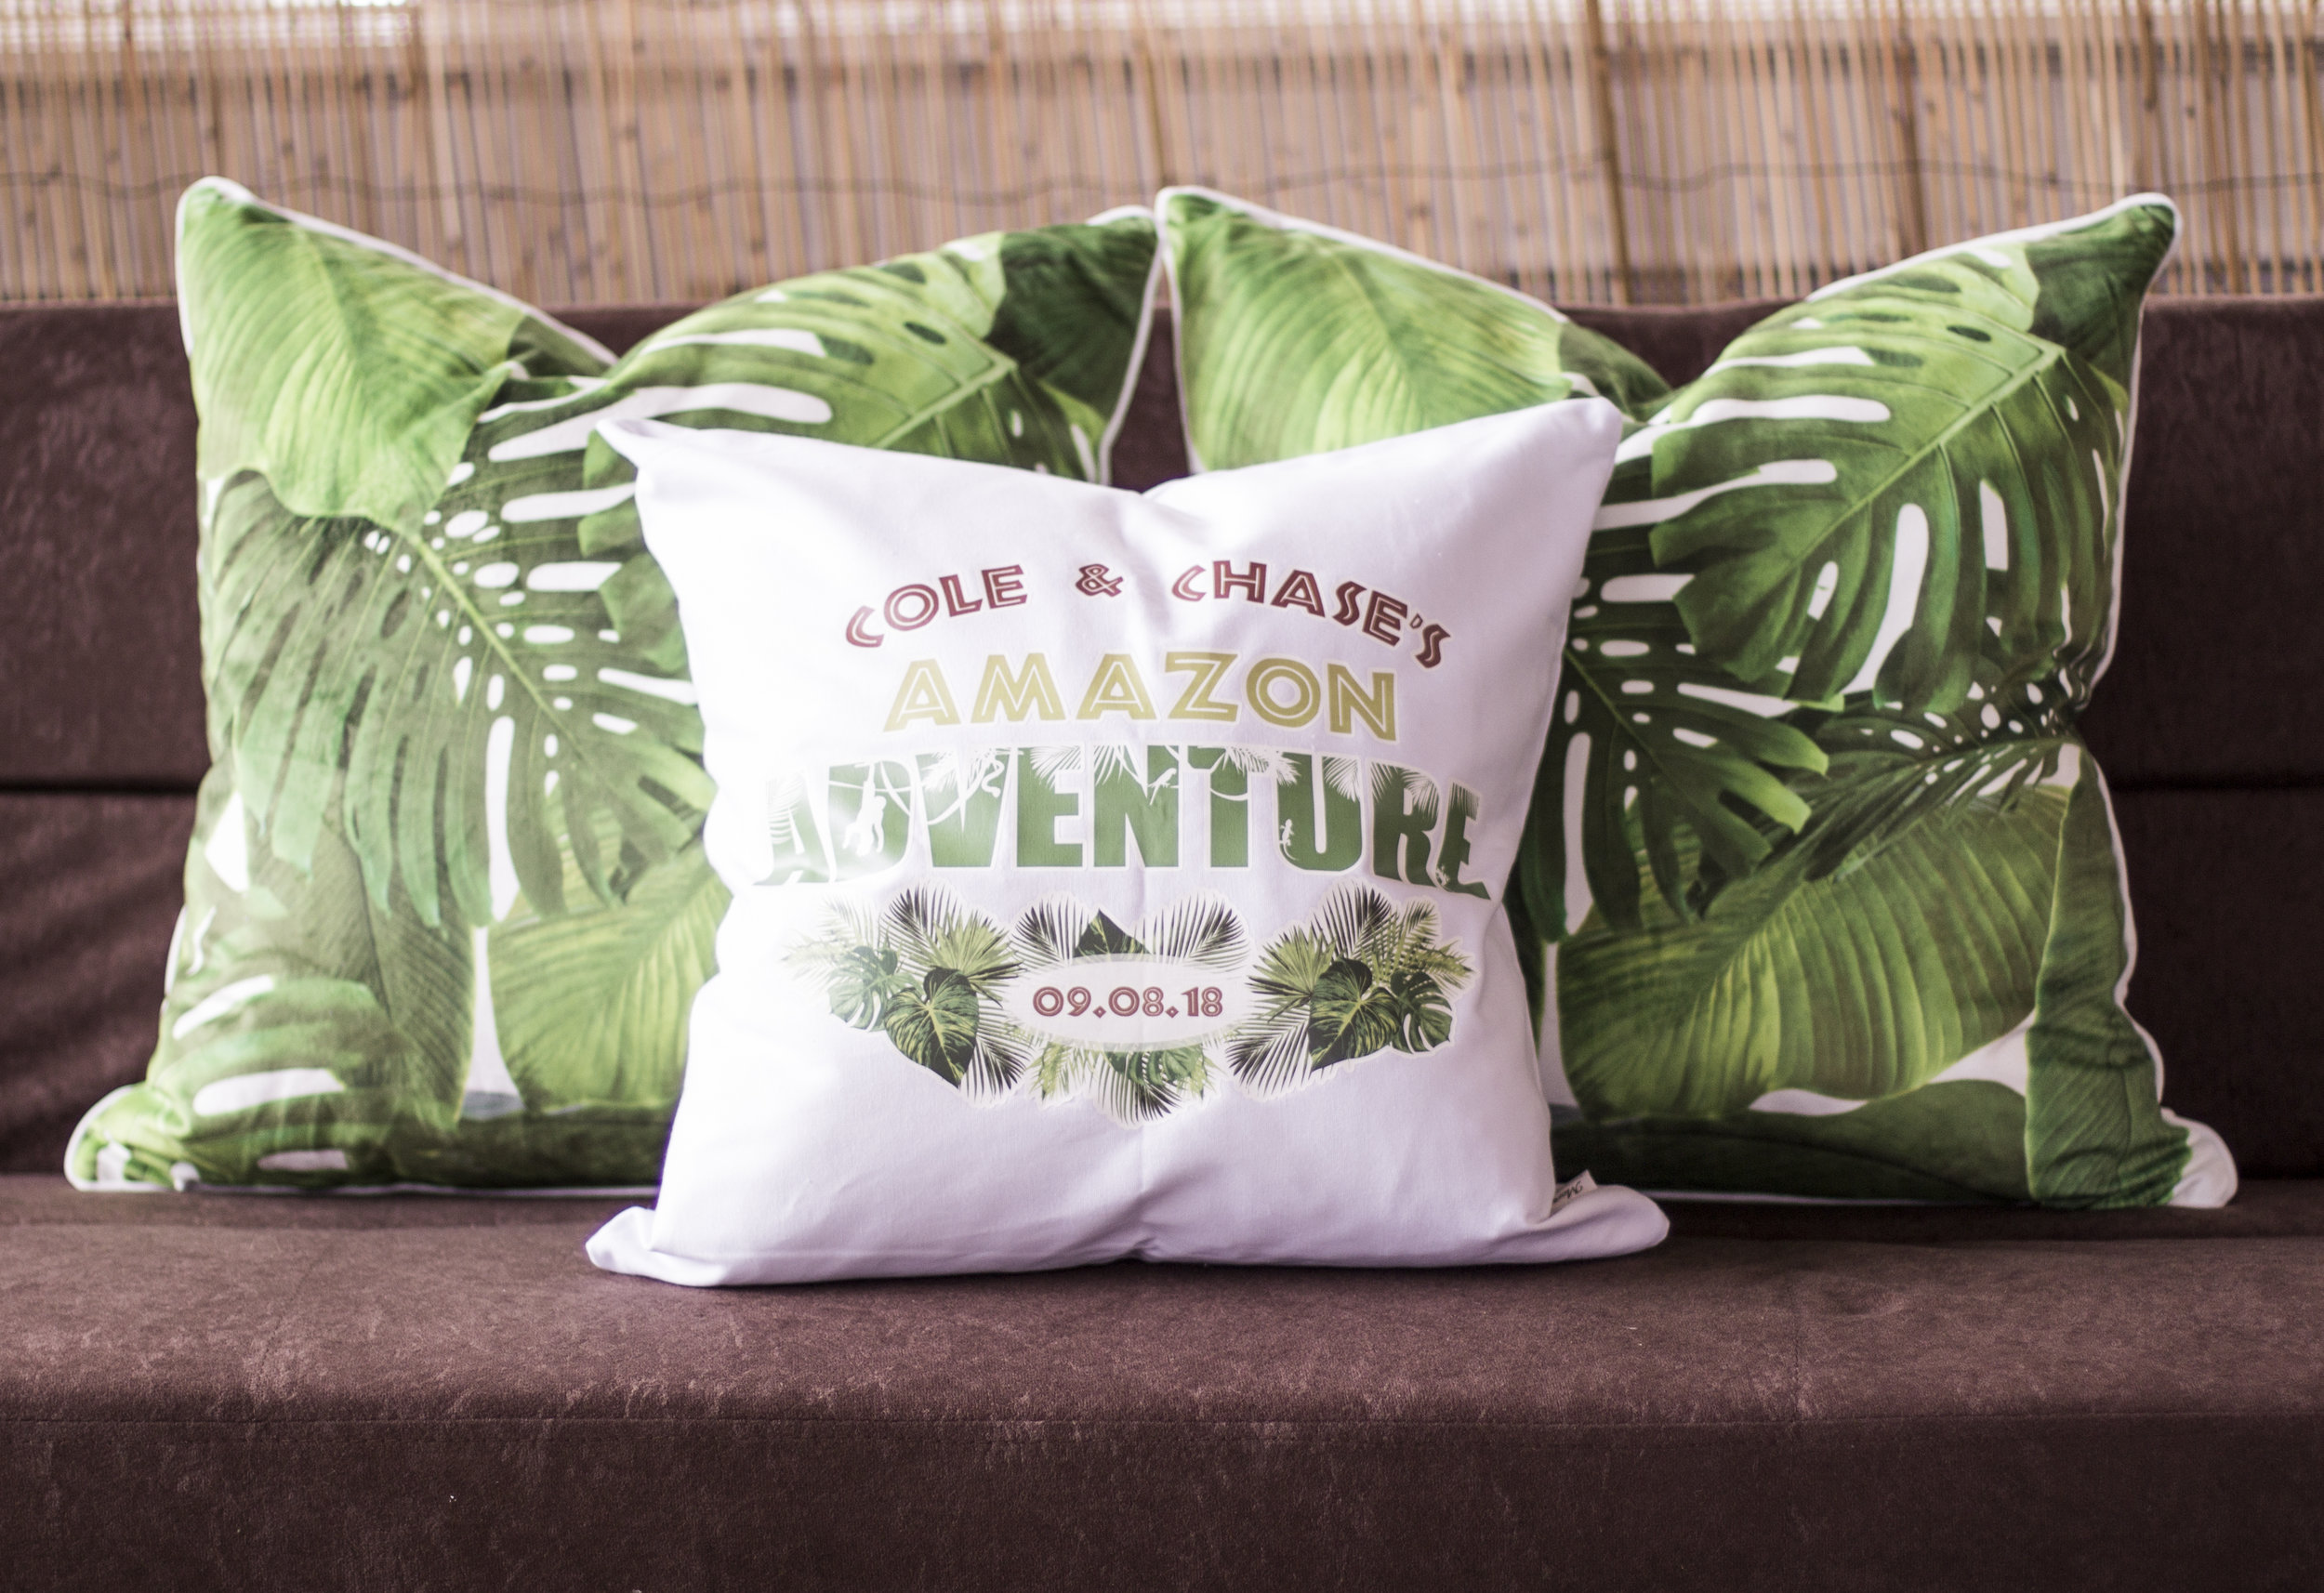 custom mitzvah pillows for amazon jungle themed mitzvah lounge